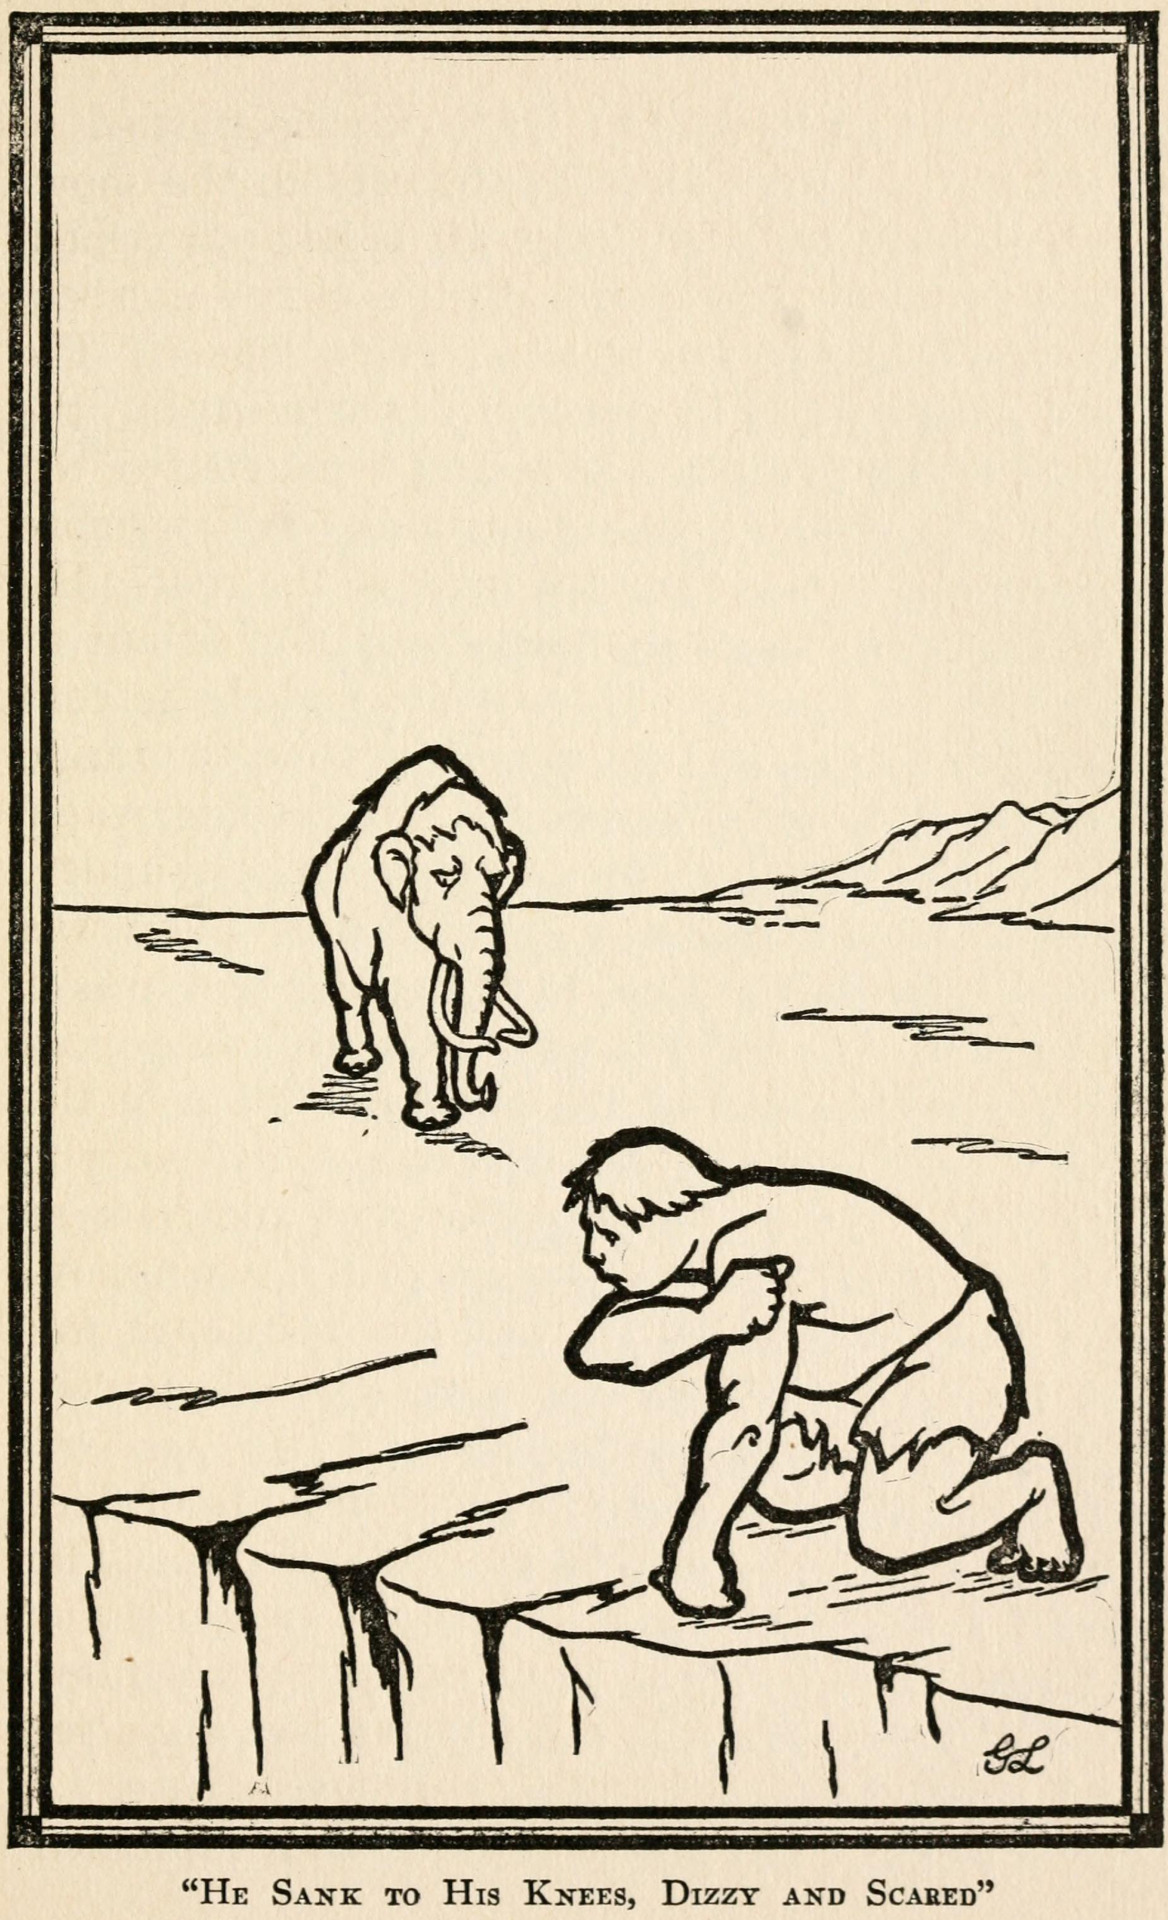 From Kutnar, Son of Pic, written and illustrated by George Langford, 1921.Lightheaded: vintage dizzy imagery.Wondering about this post? Wait for the dissertation (TBA). For now: Weblog ◆ Books ◆ Videos ◆ Music ◆ Etsy #dizzy#caveman#mammoth#vintage illustration